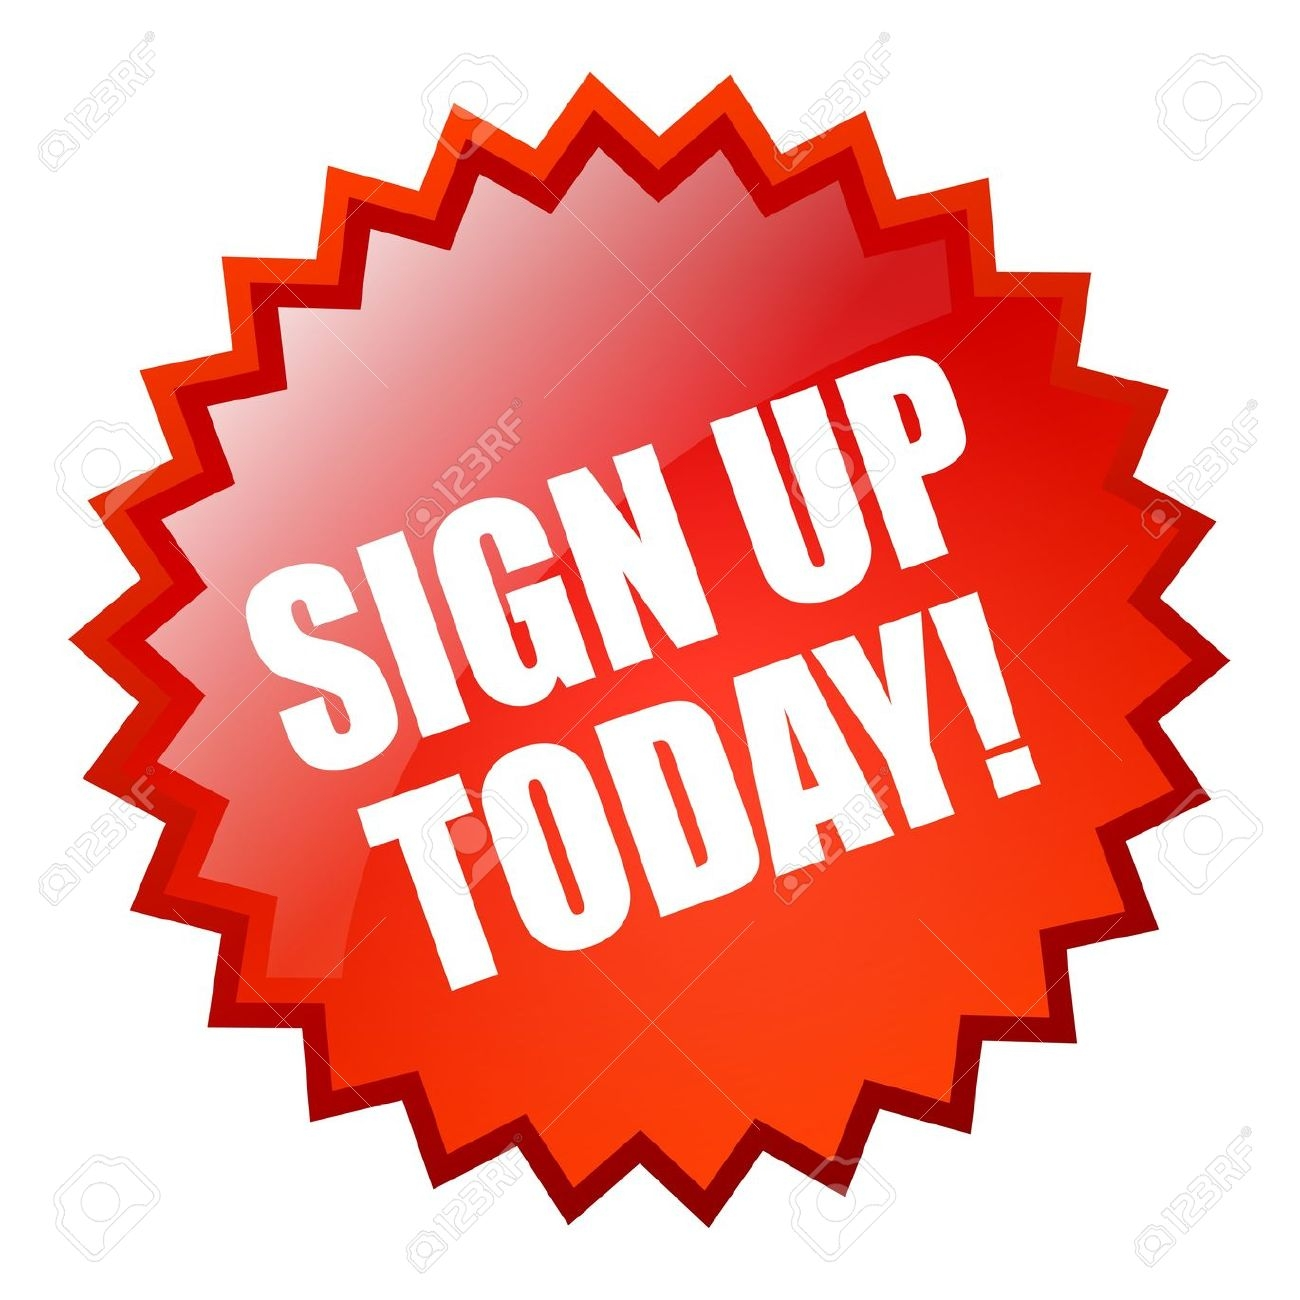 Sign up now clipart jpg black and white download Sign Up Clipart | Free download best Sign Up Clipart on ... jpg black and white download